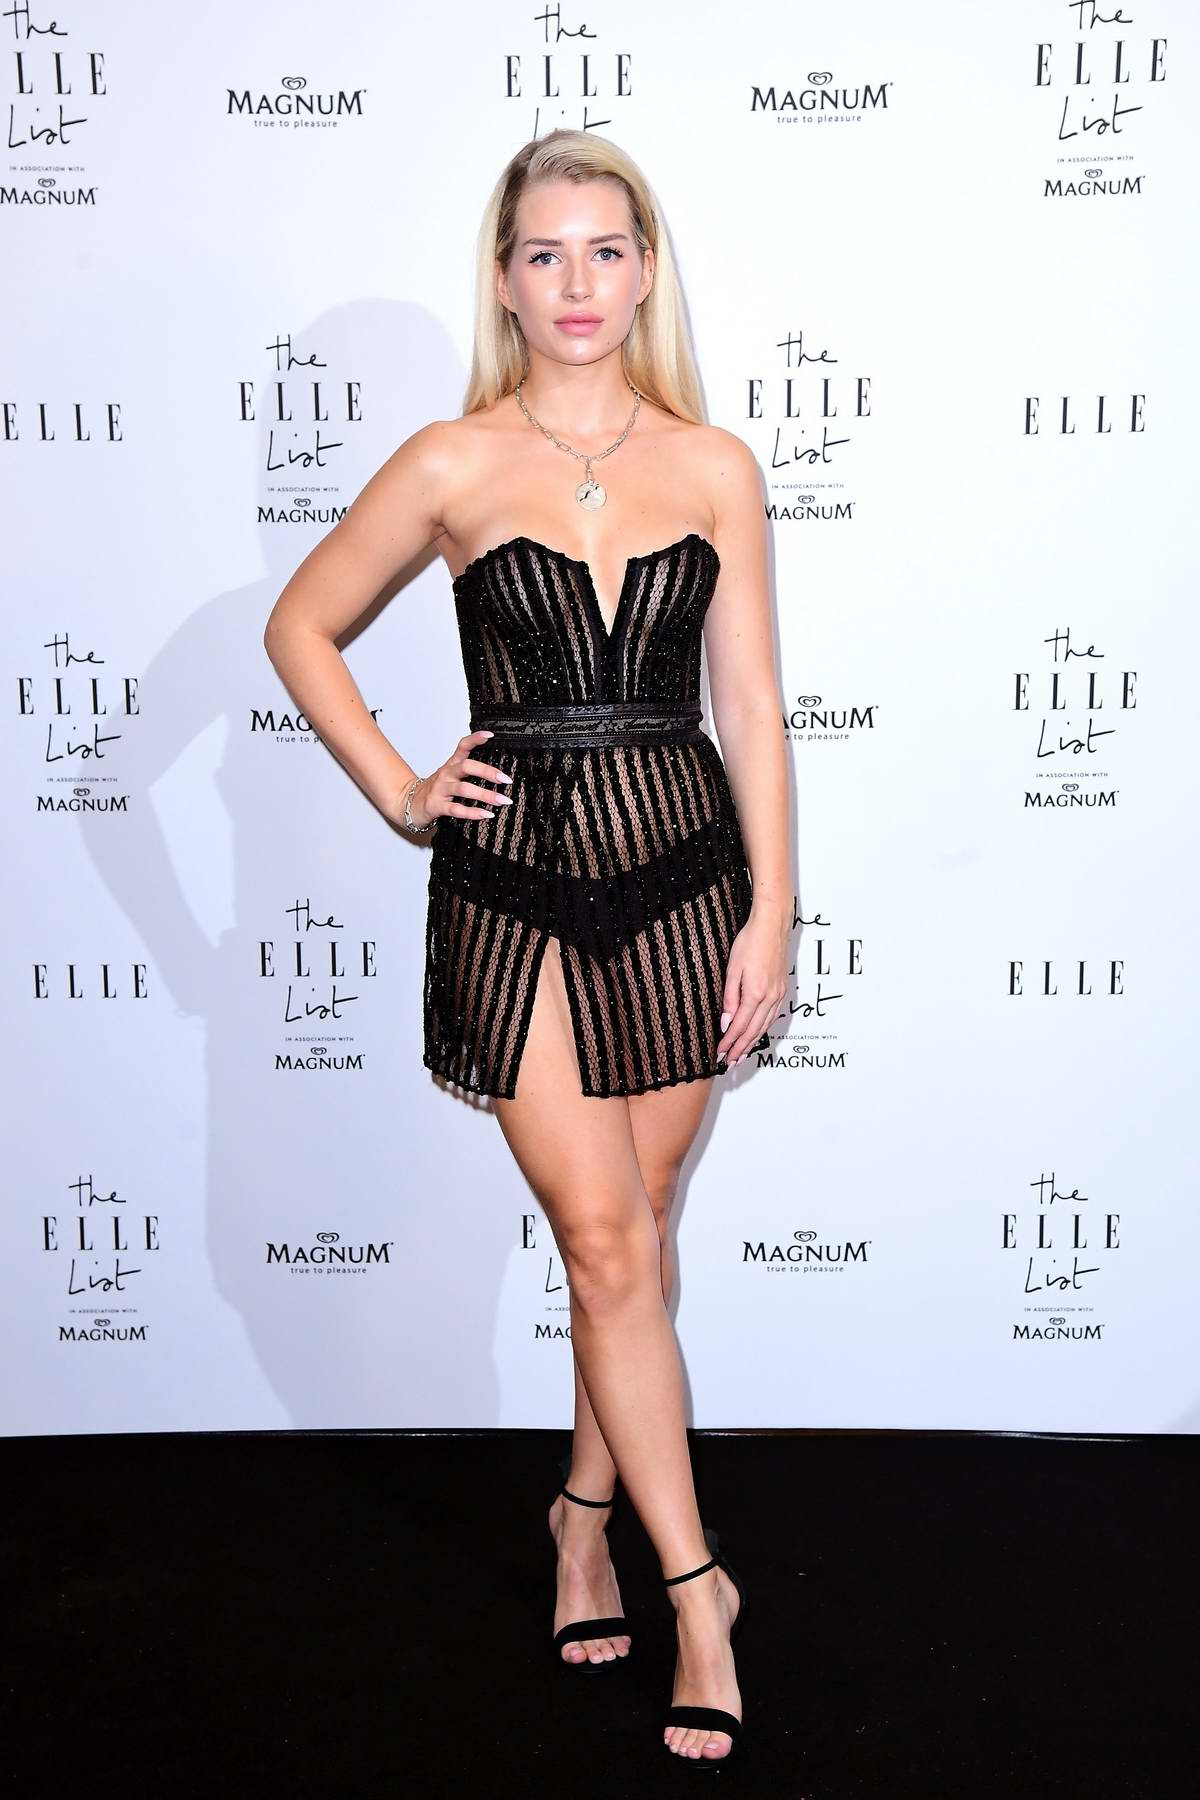 Lottie Moss attends the ELLE List VIP Party at The Petersham in London, UK